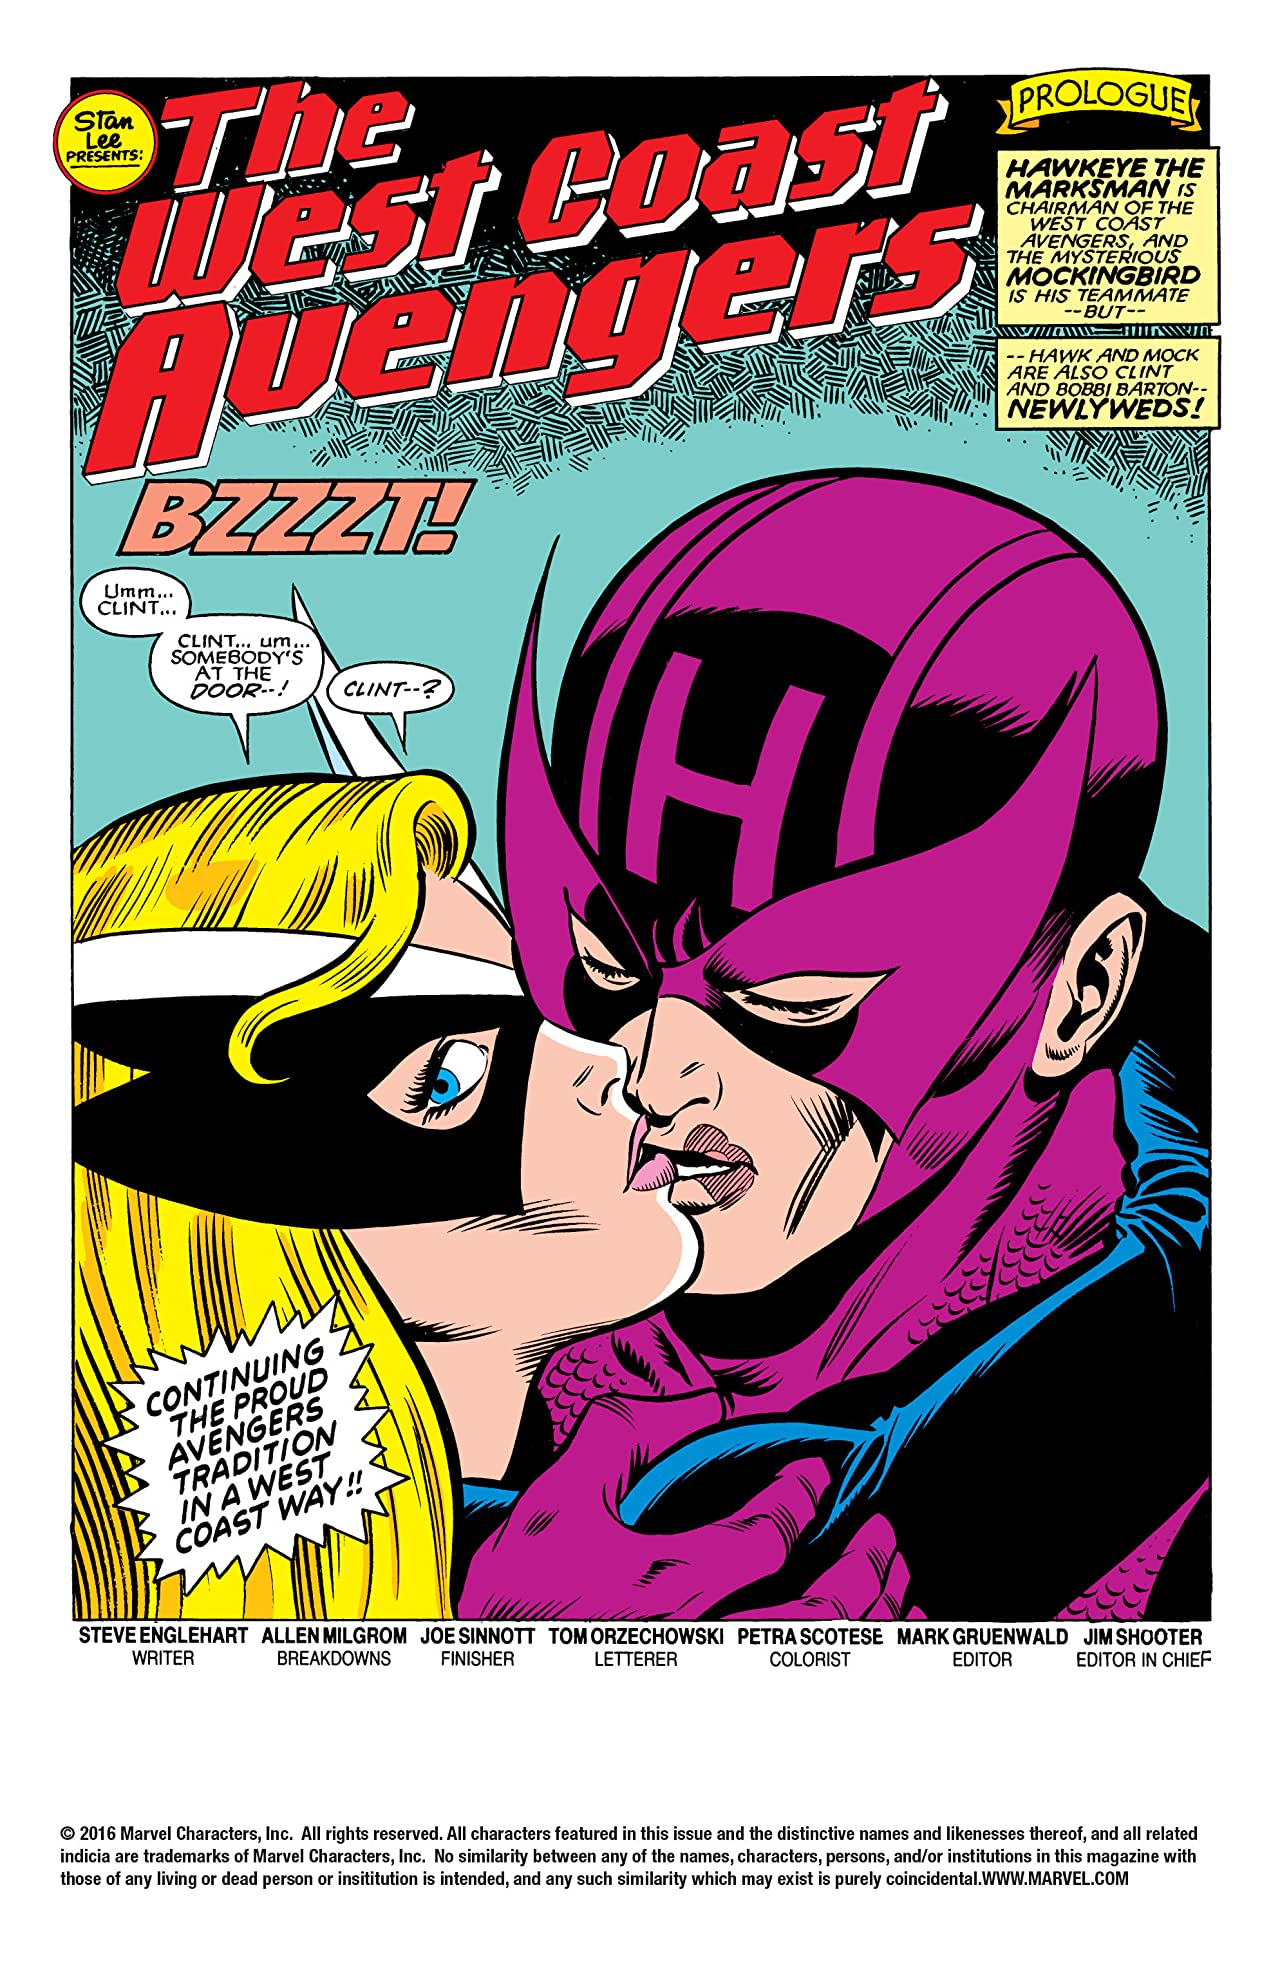 Avengers: West Coast Avengers - Family Ties